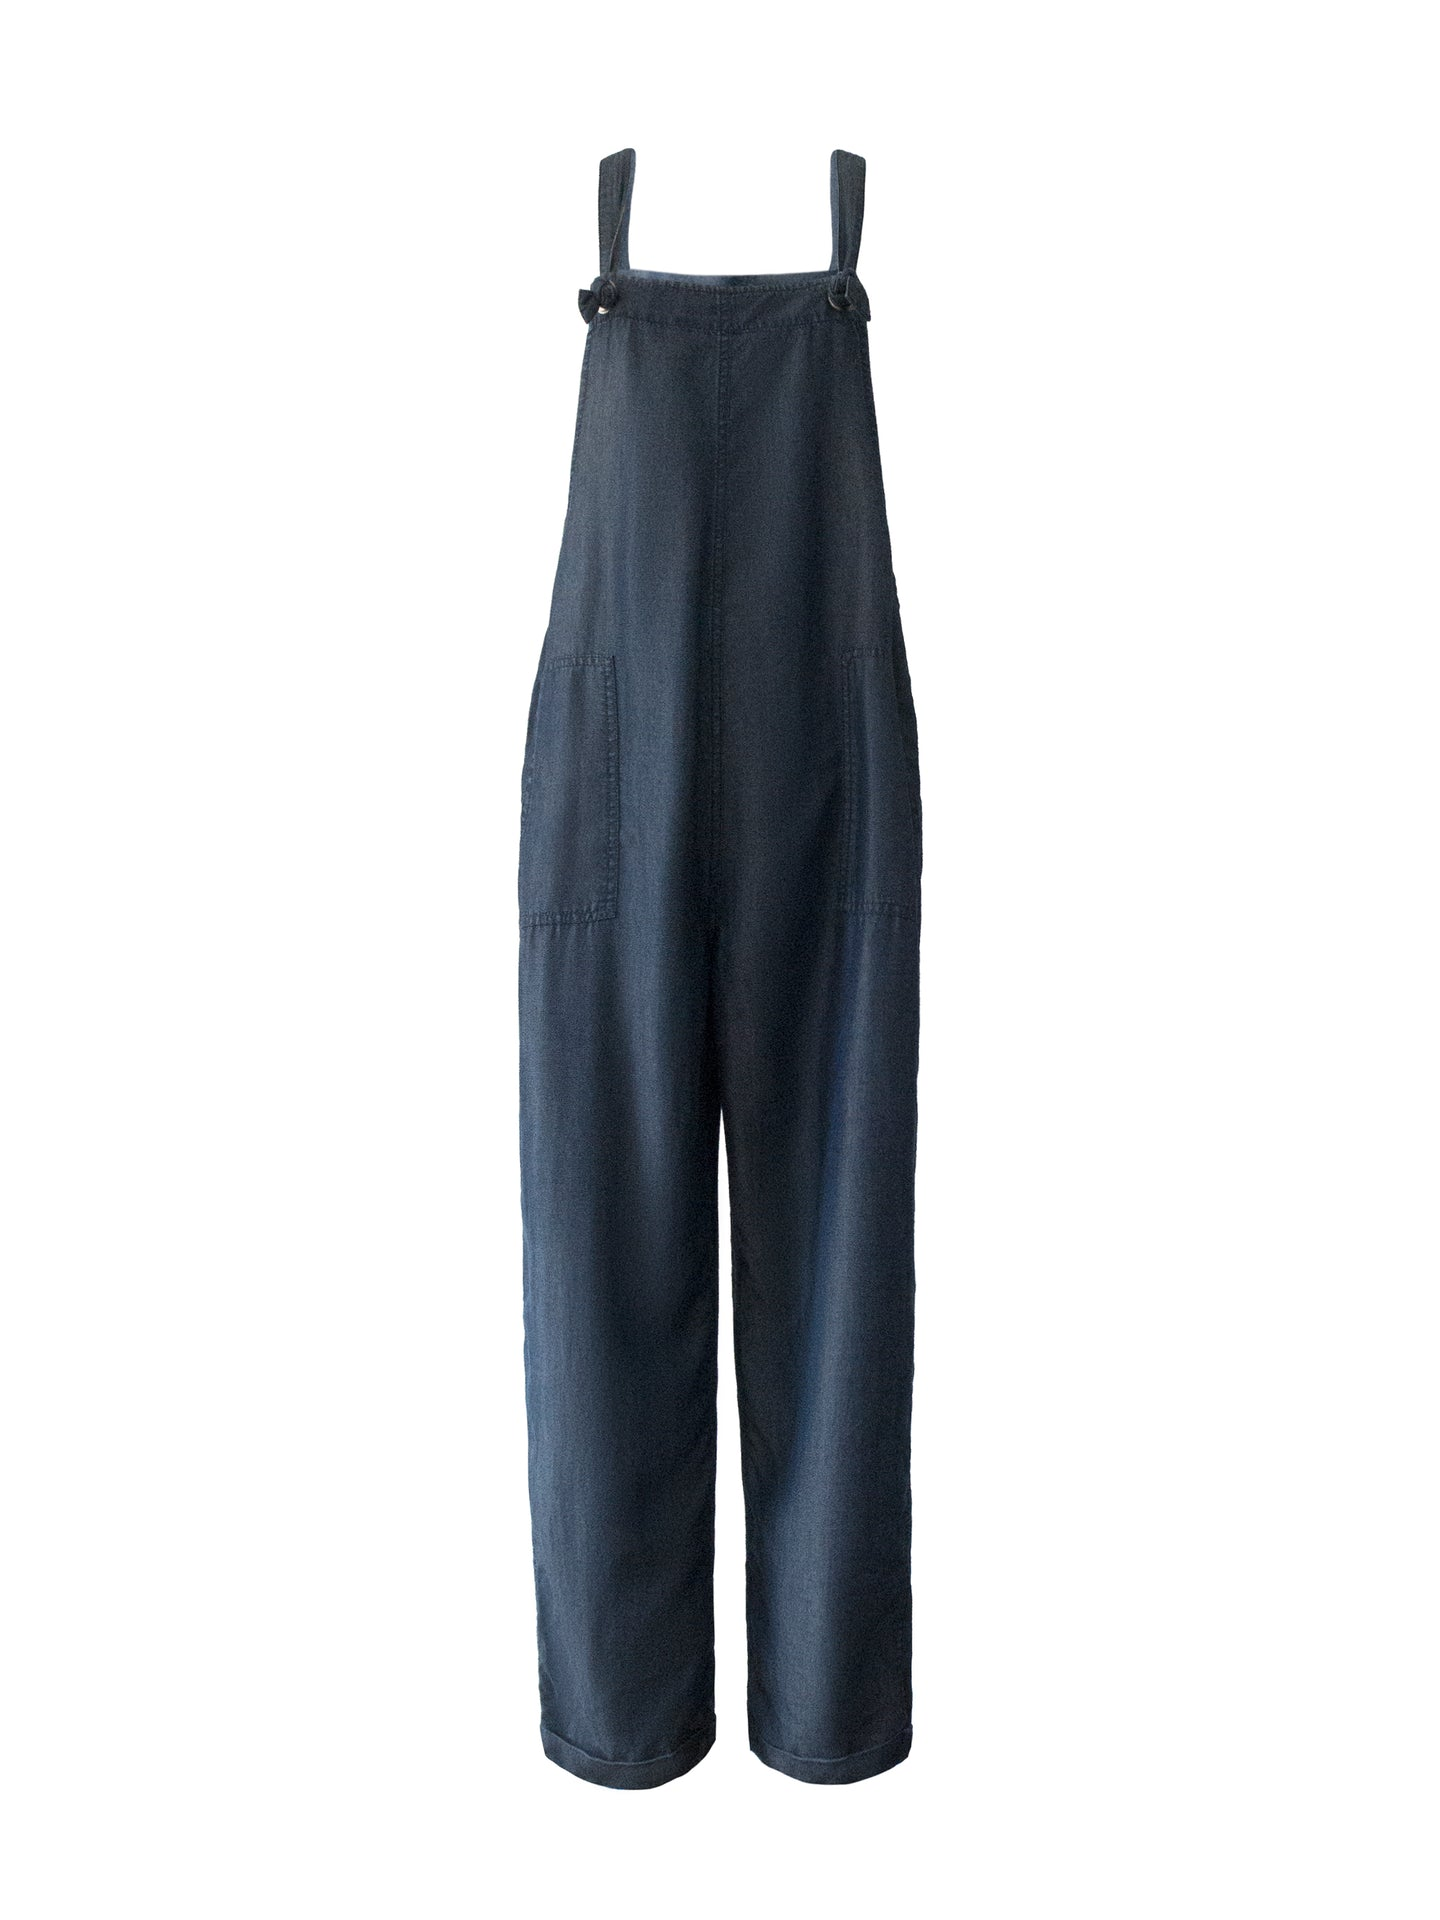 Camille lyocell twill dungaree